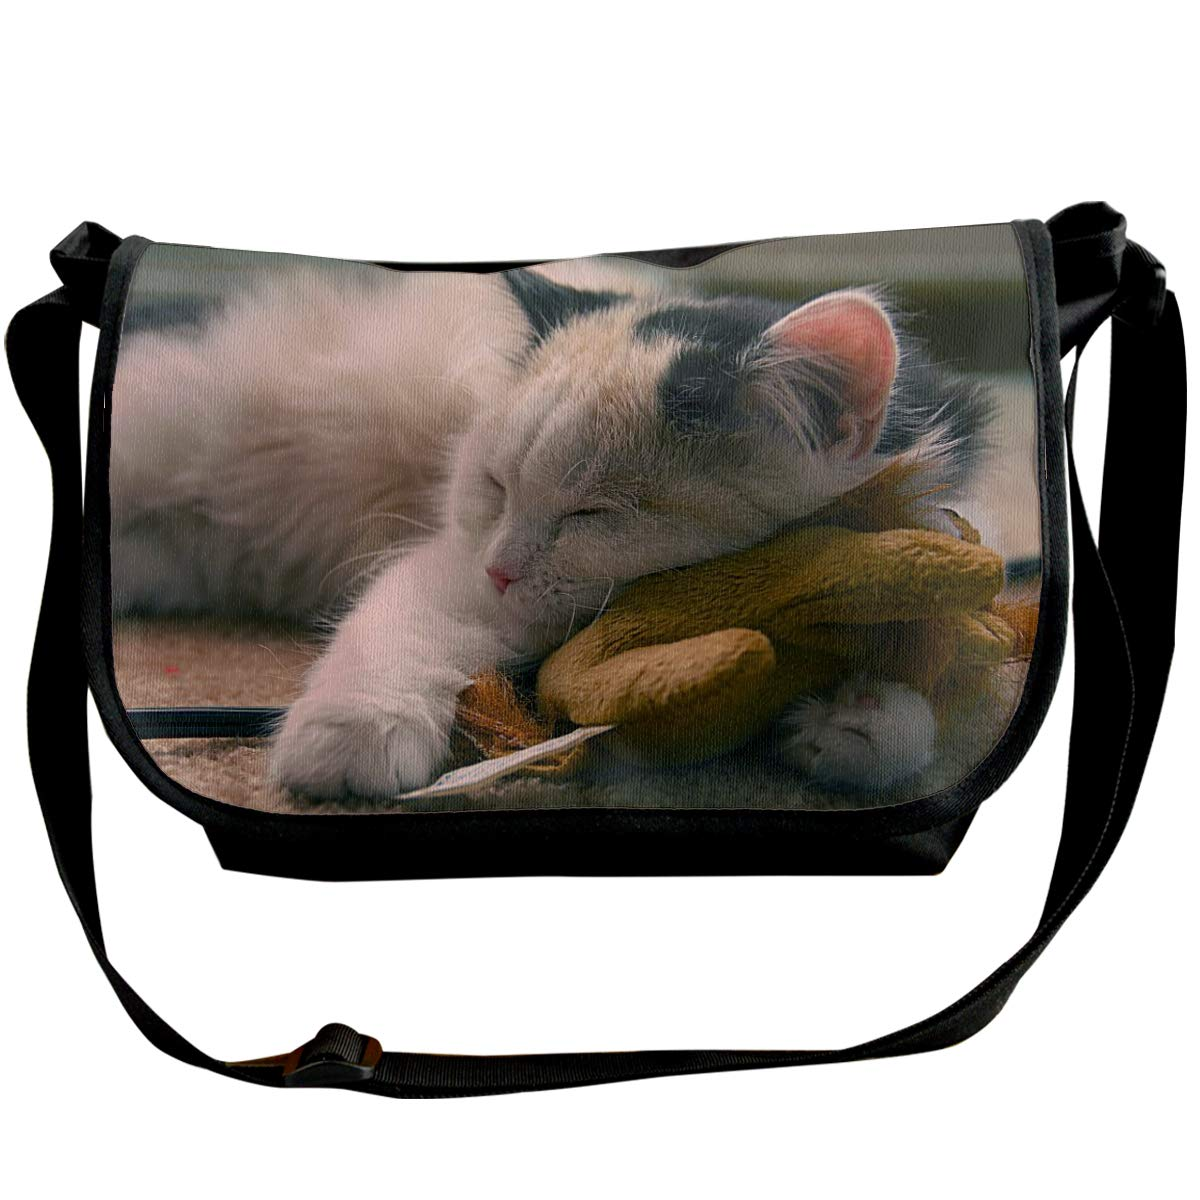 Taslilye Cat Cute Kitten Pet Sleeping Toy Personalized Wide Crossbody Shoulder Bag For Men And Women For Daily Work Or Travel